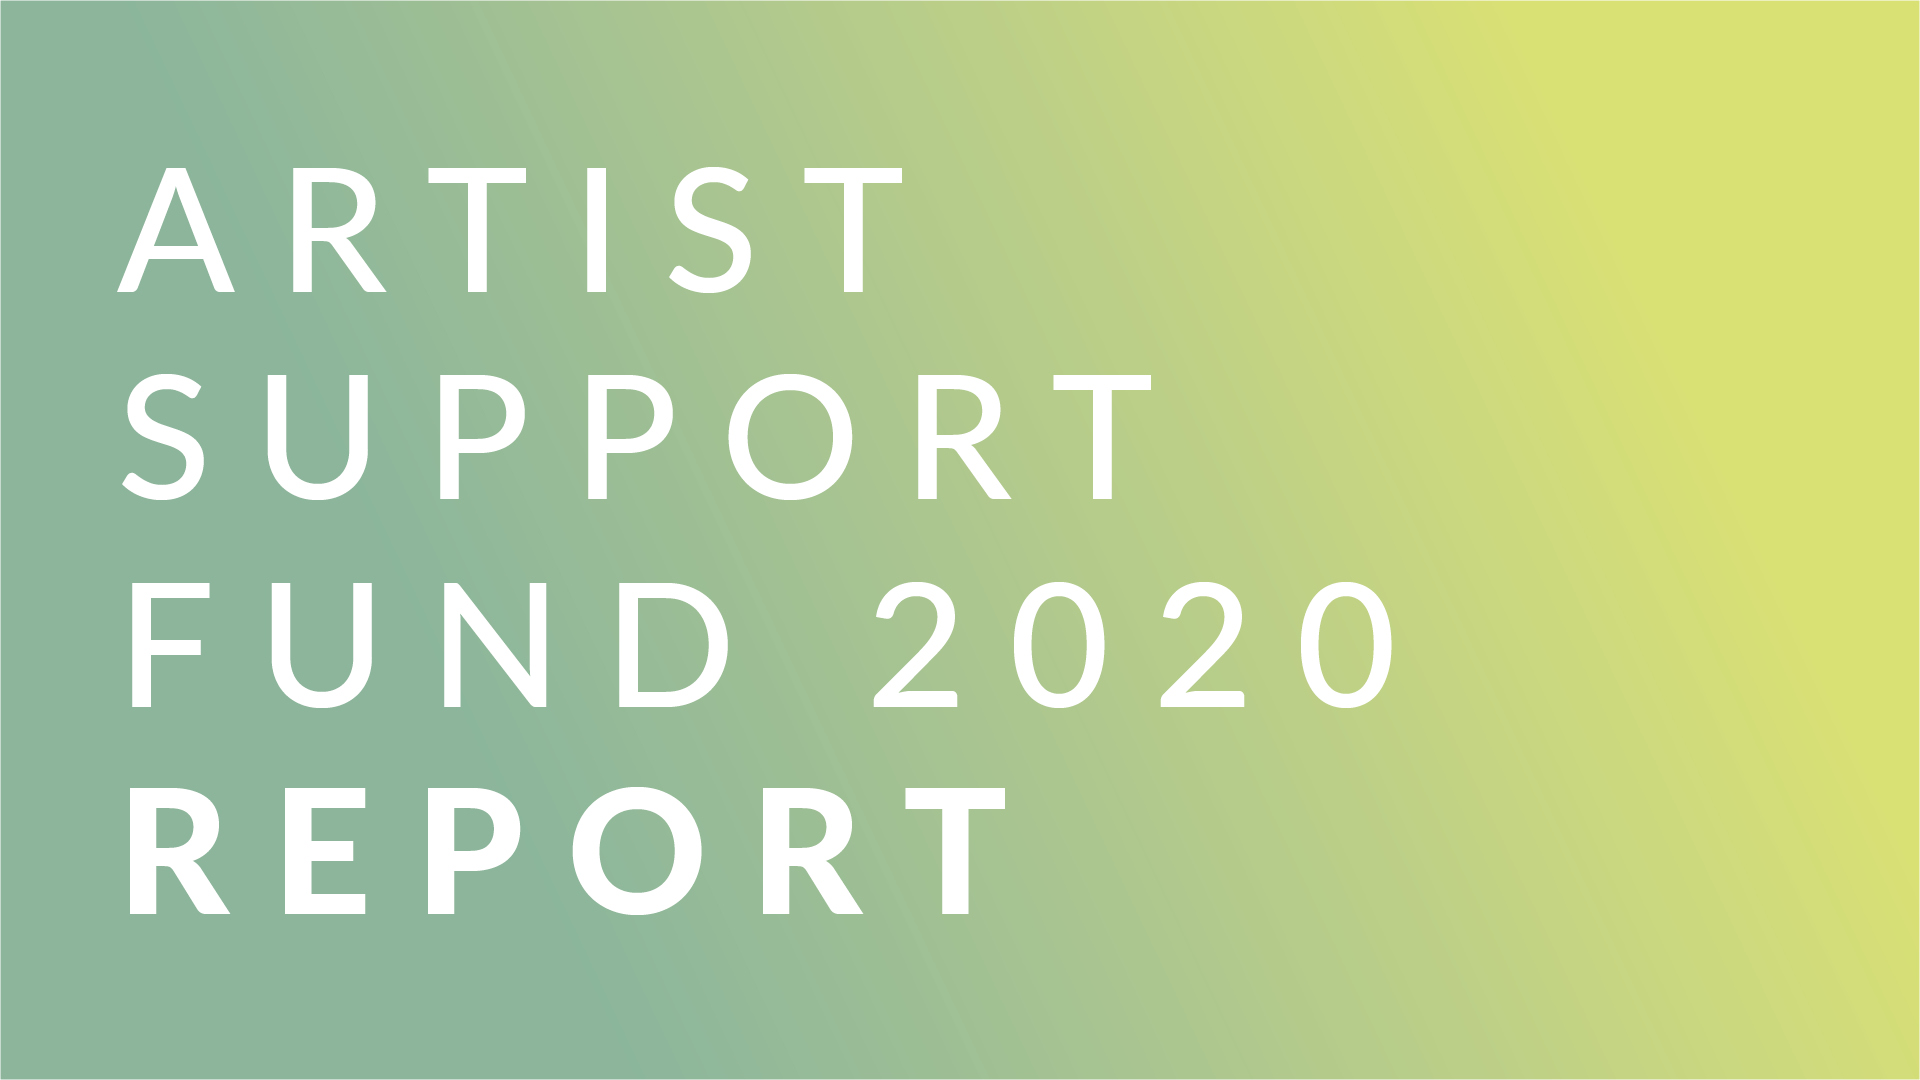 A coloured background, fading from pale turquoise to lime yellow. In white text it says: ARTIST SUPPORT FUND 2020 REPORT